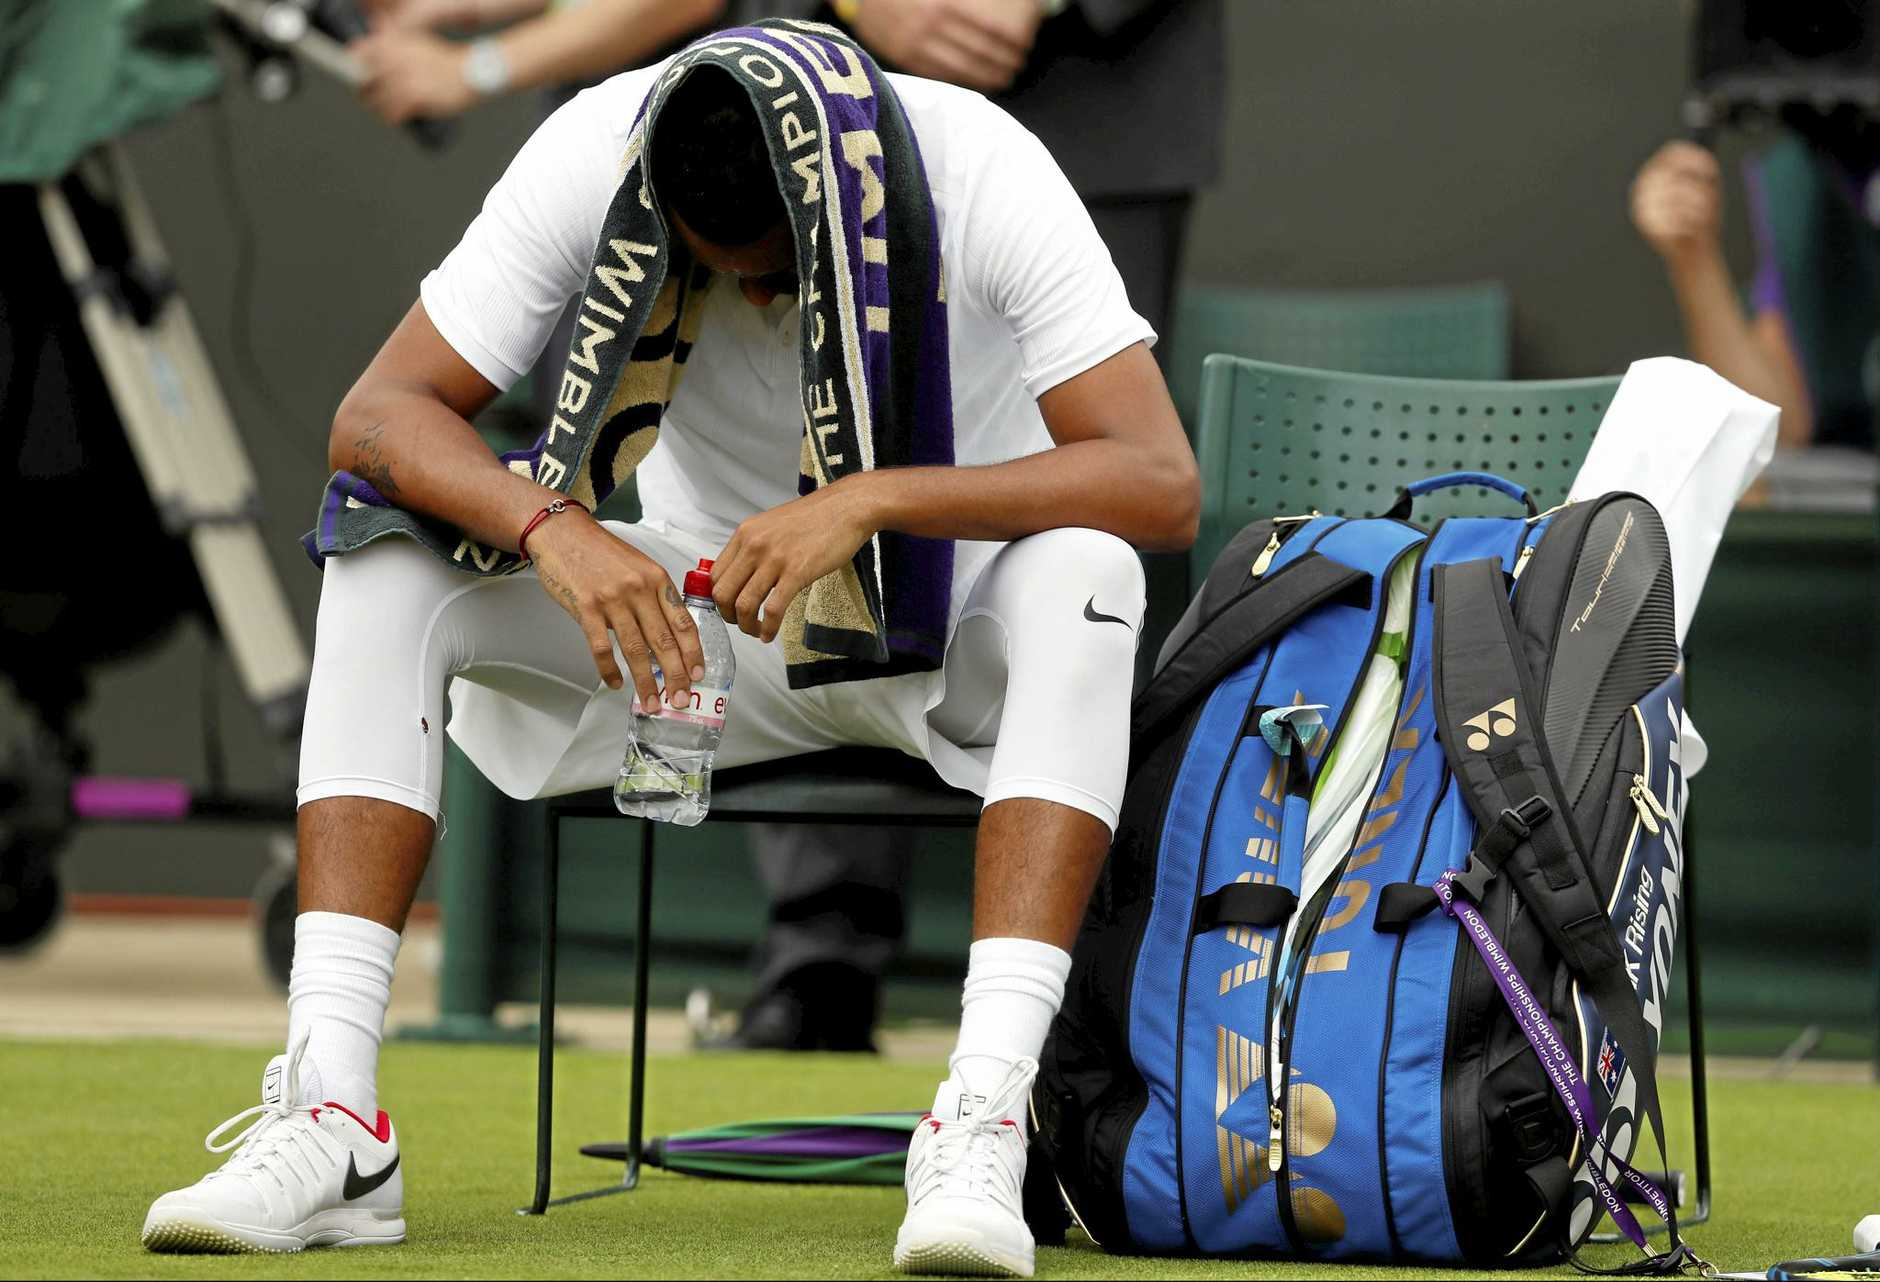 DOWN AND OUT: Australia's Nick Kyrgios is suffering during his first round match against Pierre-Hugues Herbert at Wimbledon.